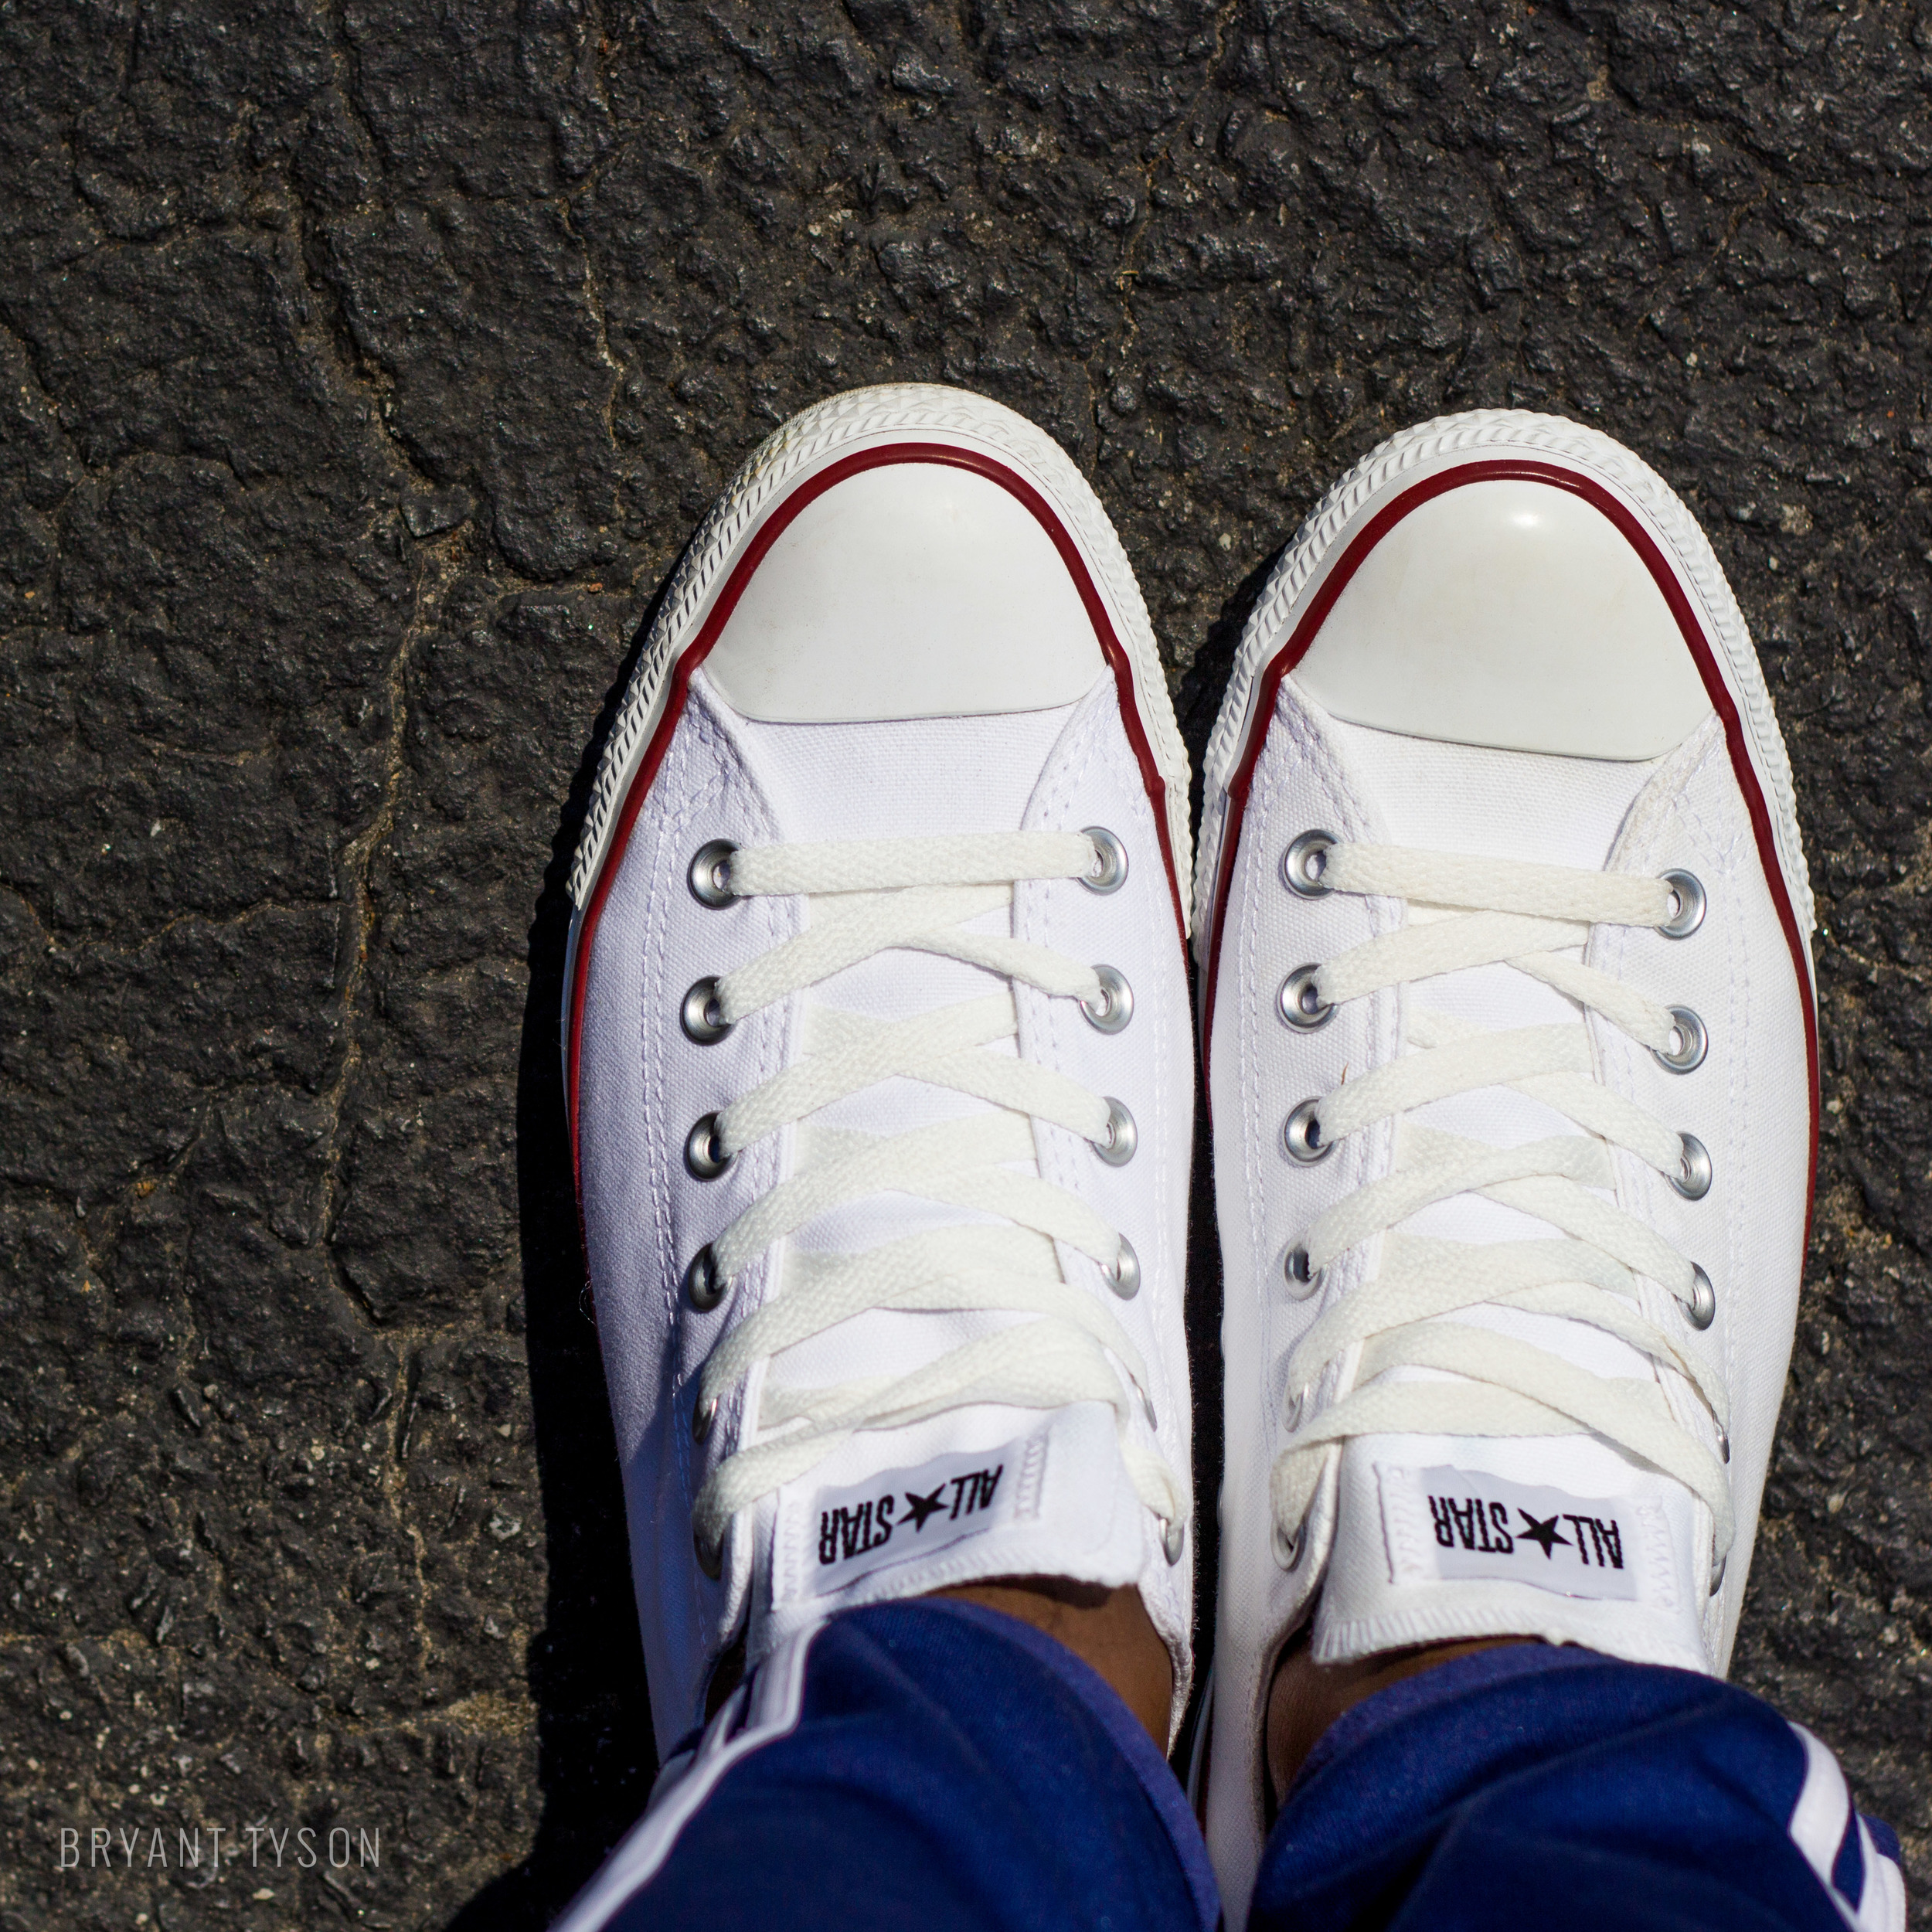 converse shoes greenville nc photographer bryant tyson